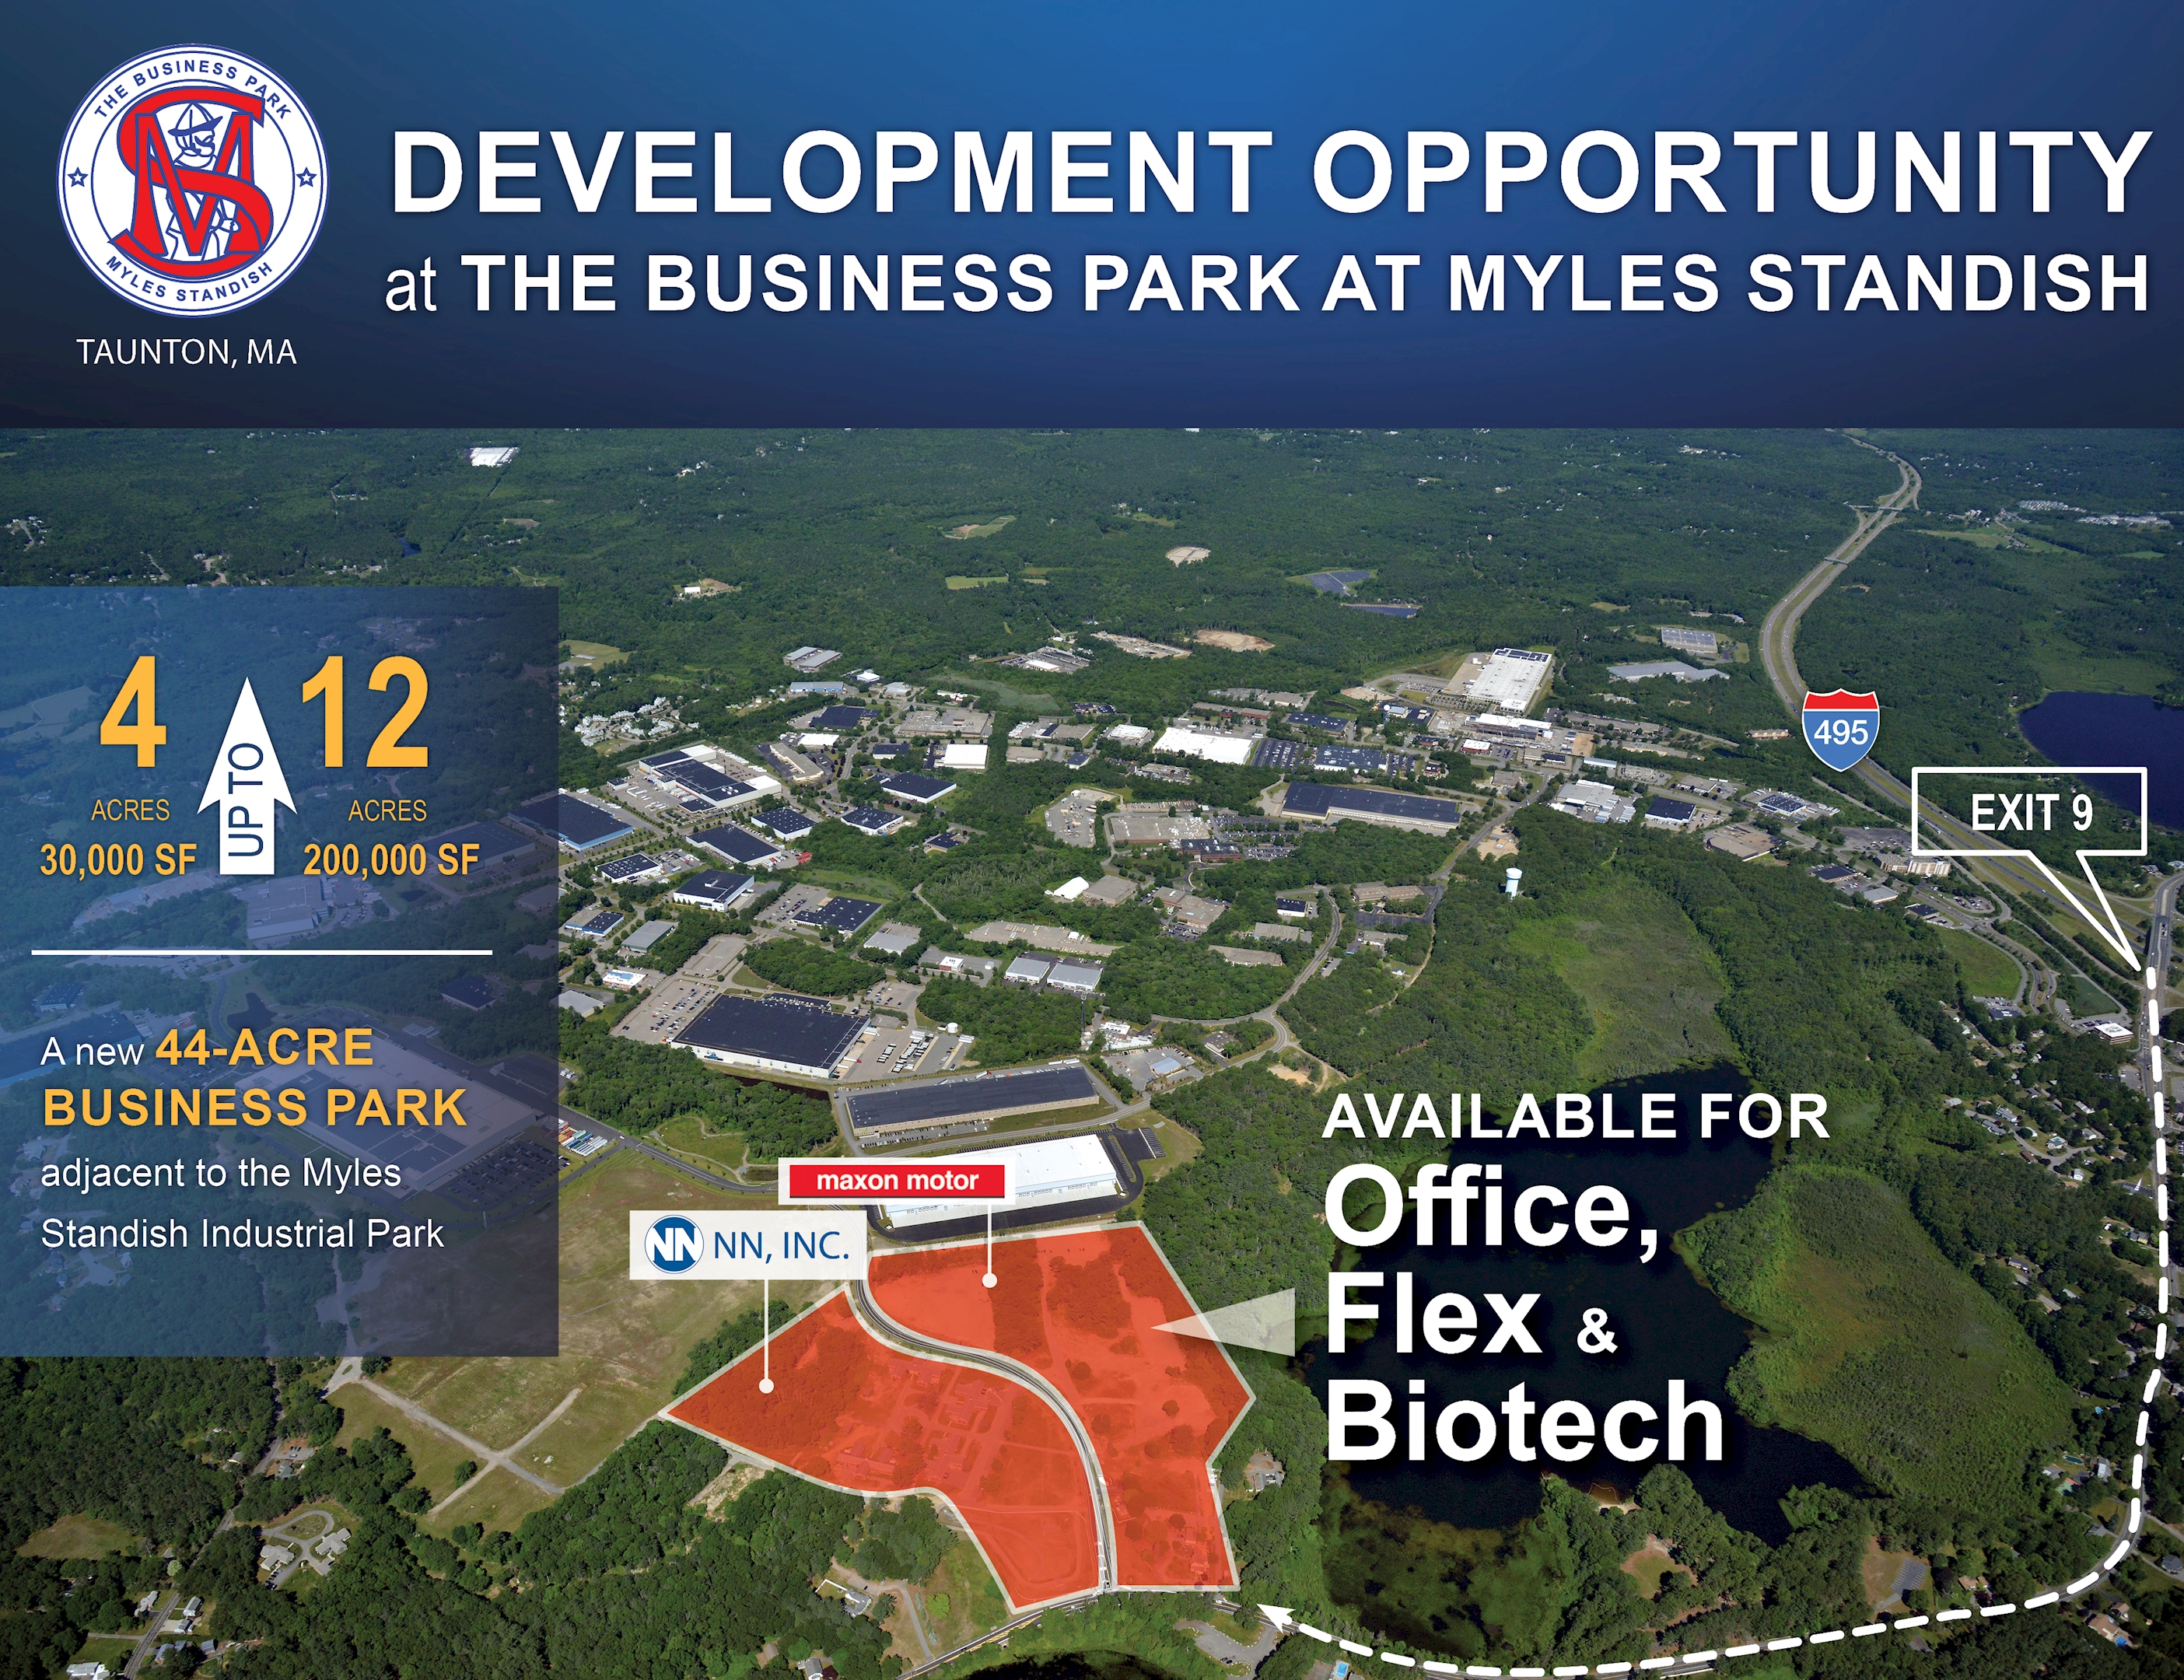 The Business Park at Myles Standish